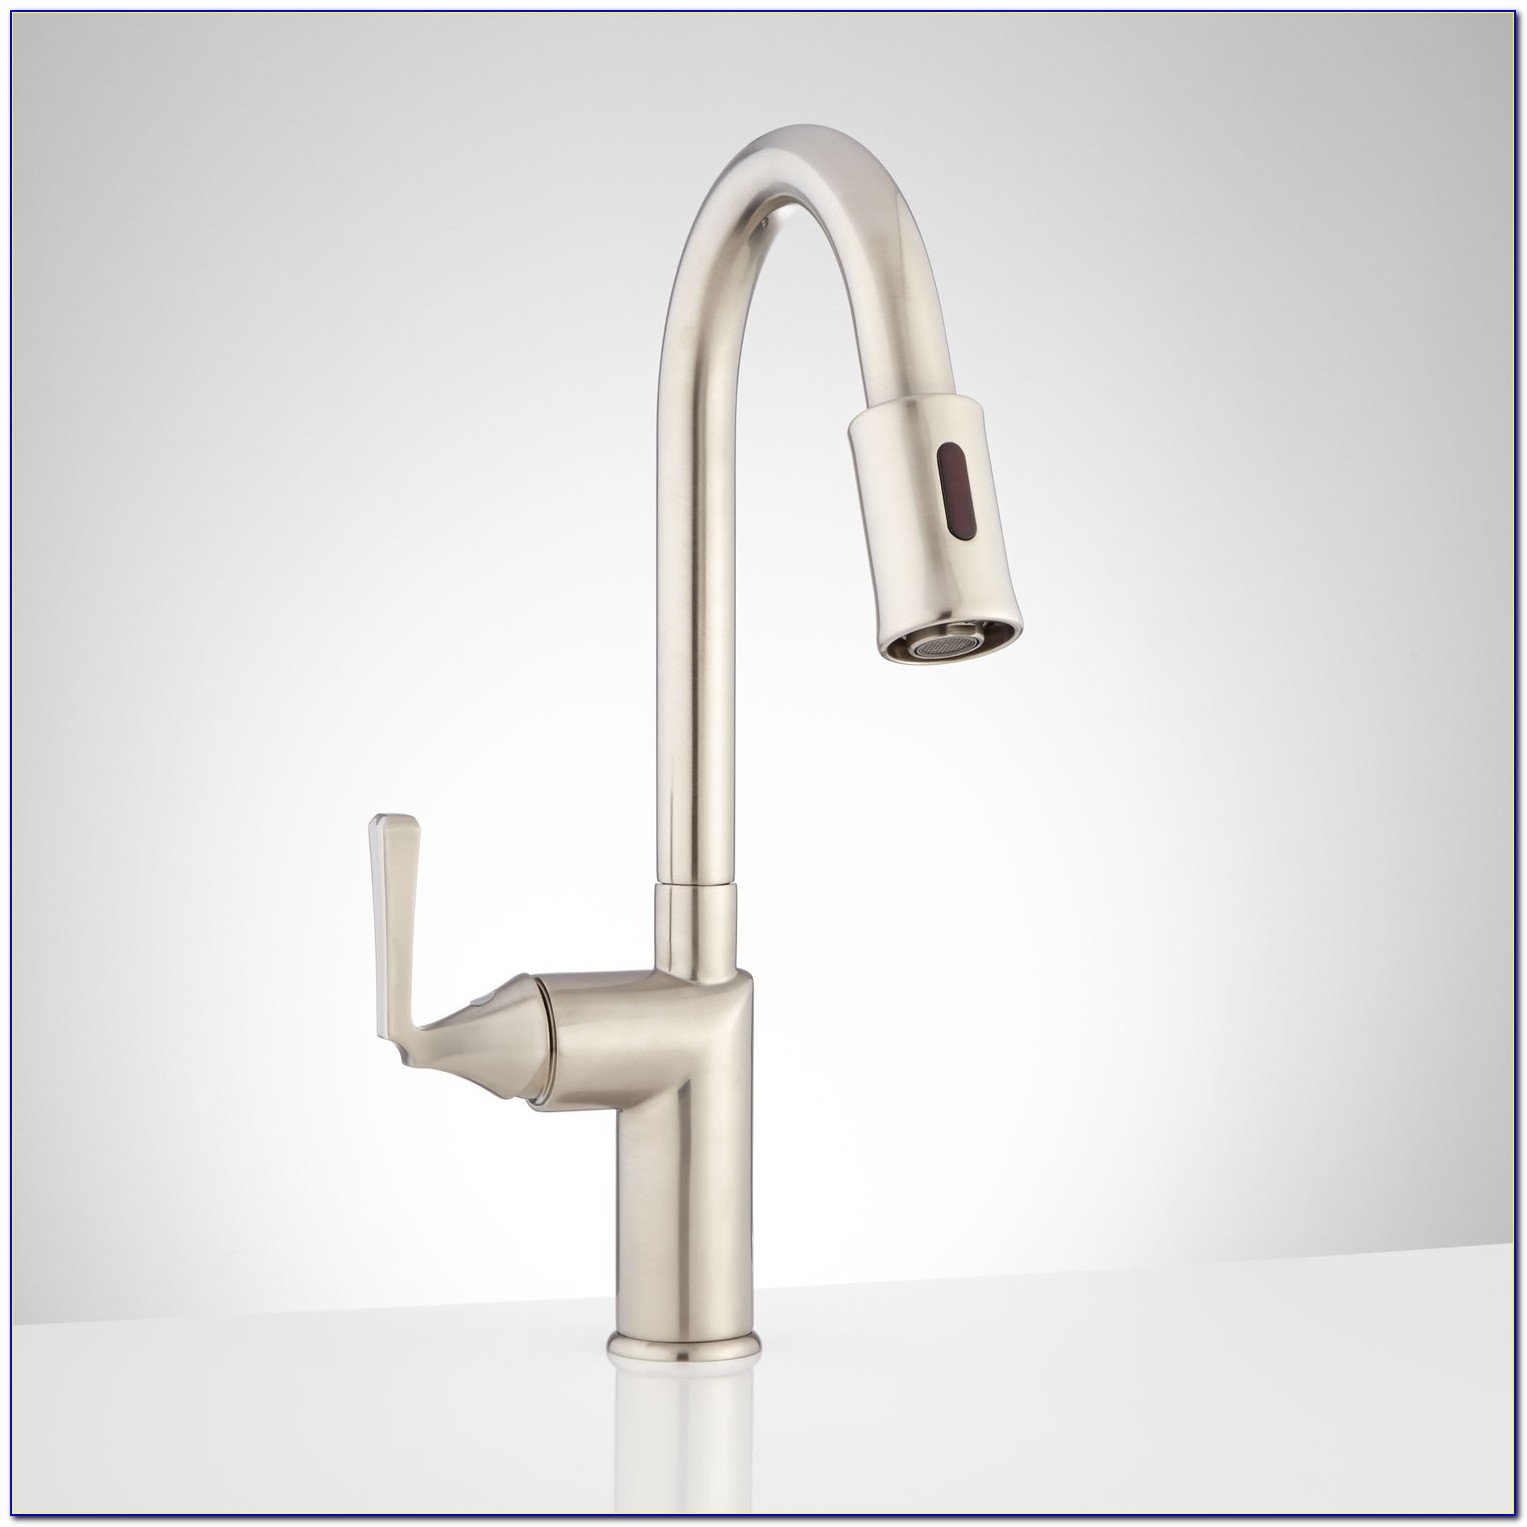 Delta No Touch Faucet Troubleshooting Delta No Touch Faucet Troubleshooting Delta Touch Faucet Problems Inspirations Also Touchless Kitchen 1500 X 1500